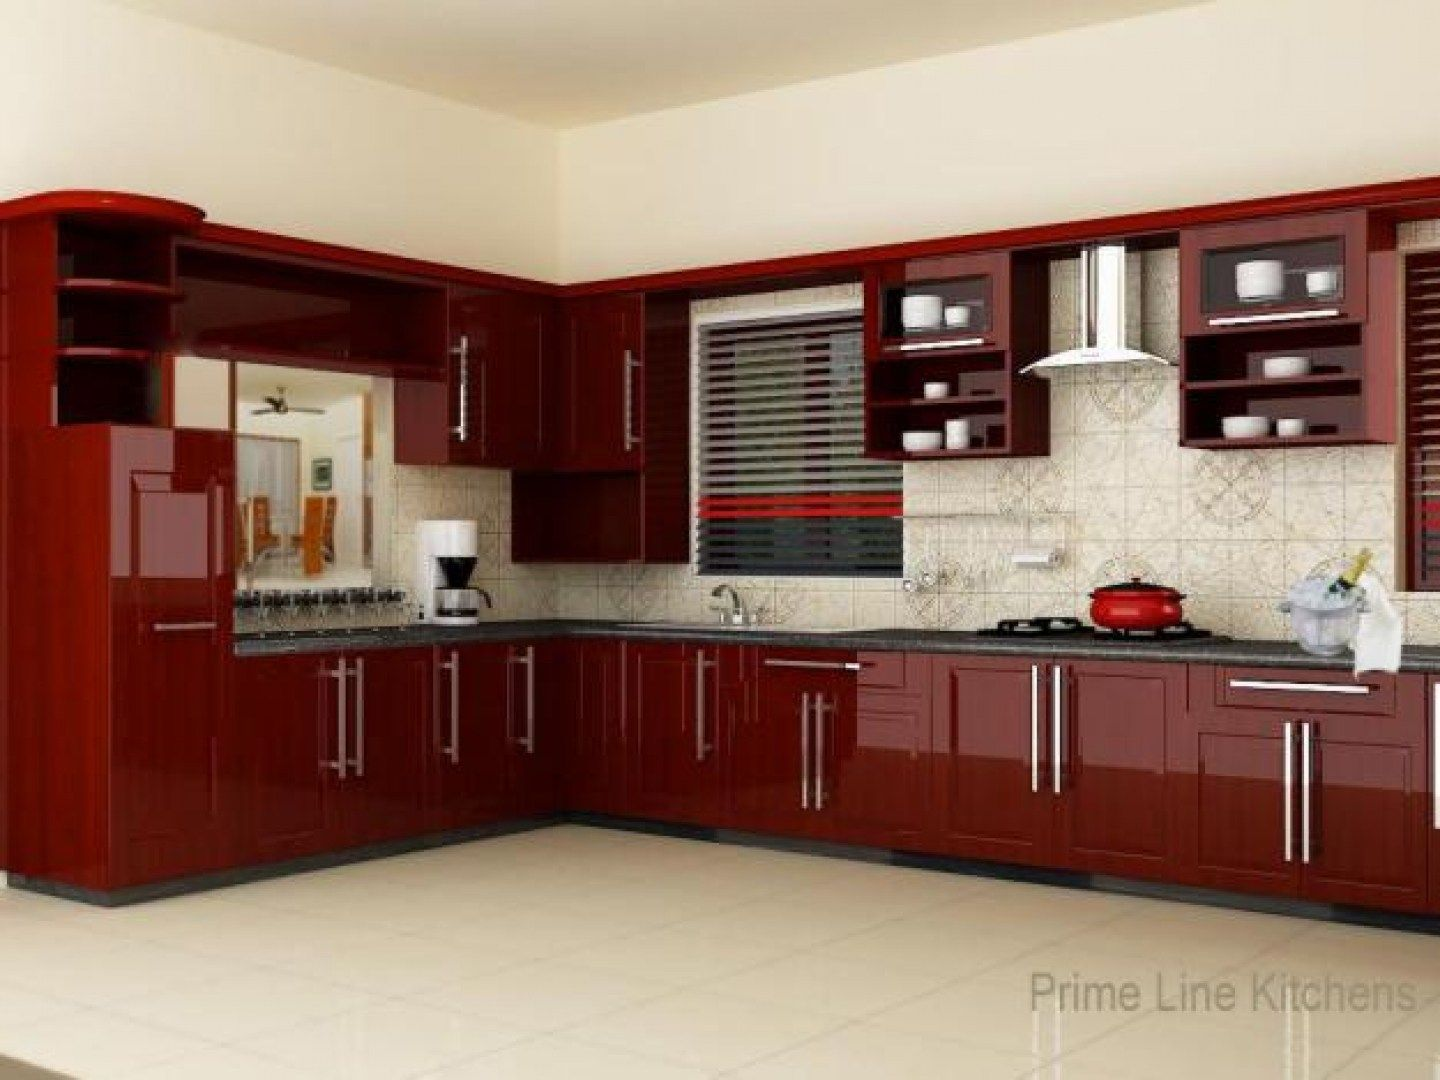 Kitchen Design Ideas Kitchen Woodwork Designs Hyderabad Download King Platform Bed Designs